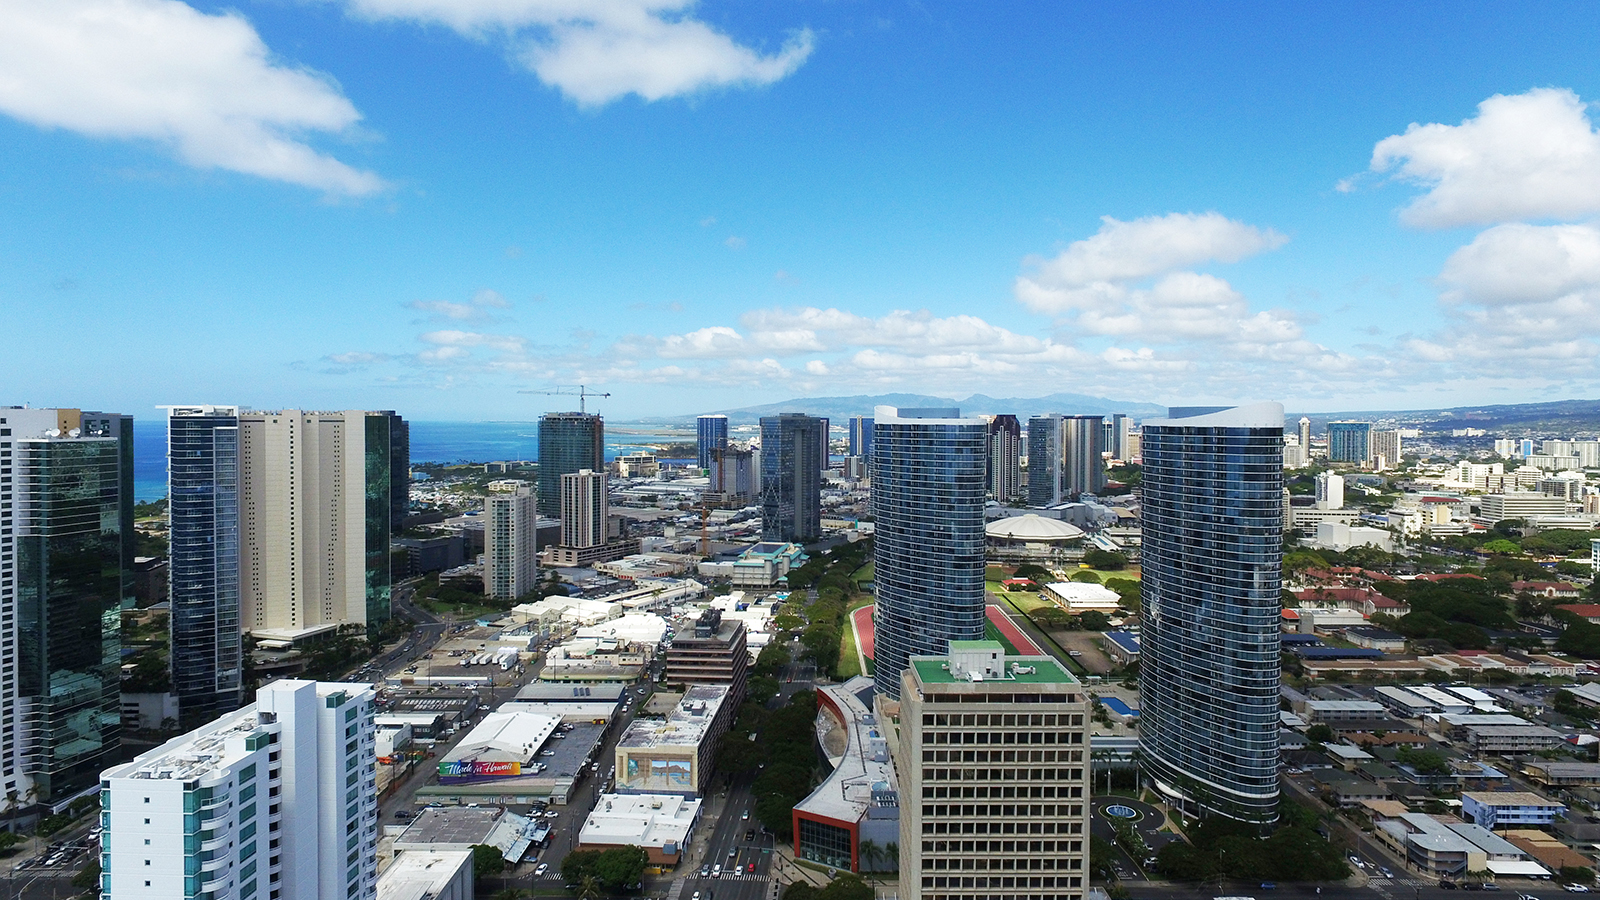 Hawaii Ocean Plaza Ewa View